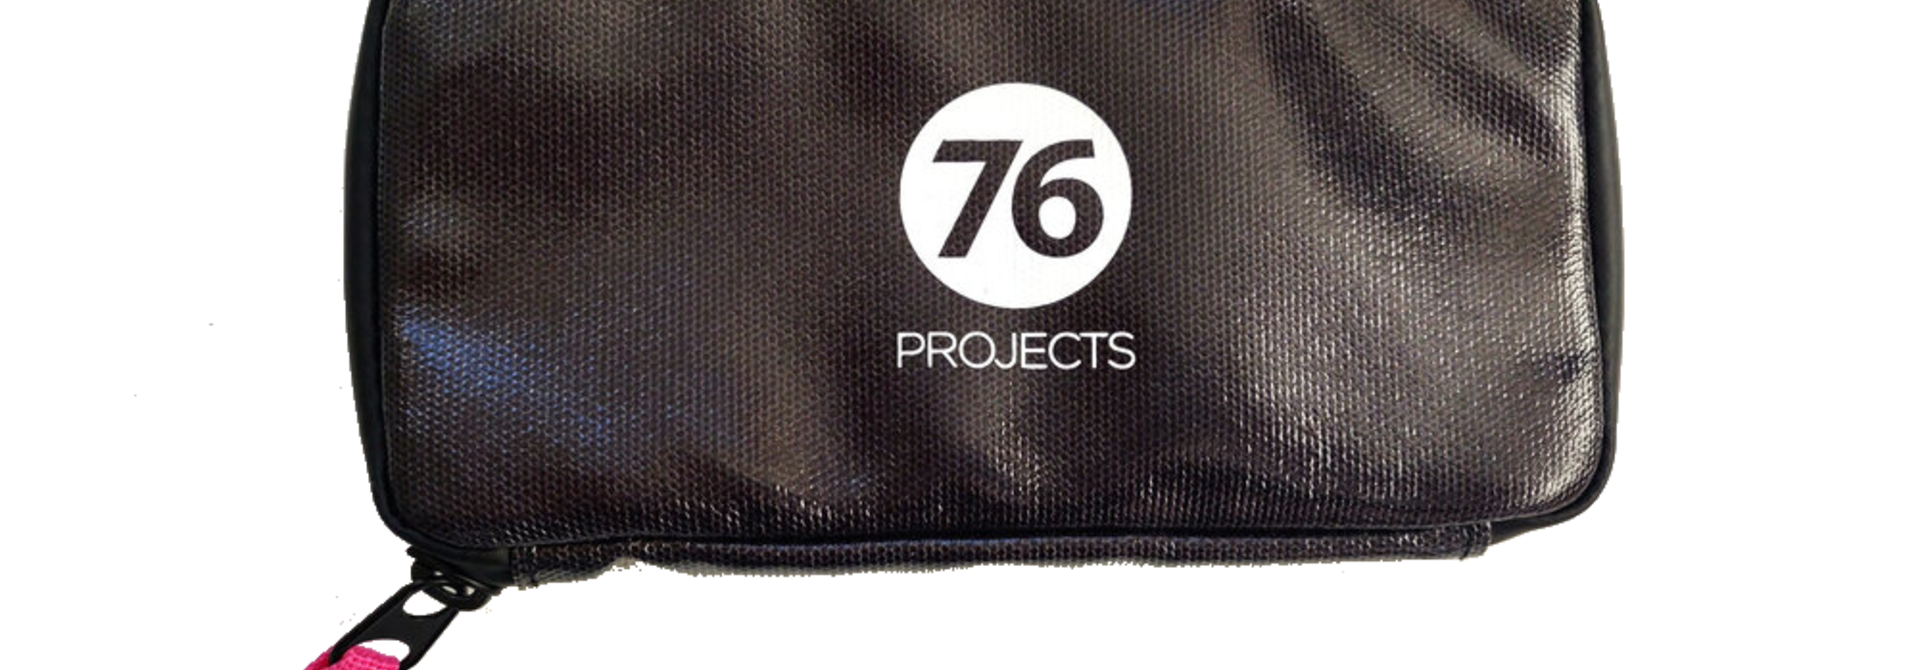 76 Projects Phone Wallet